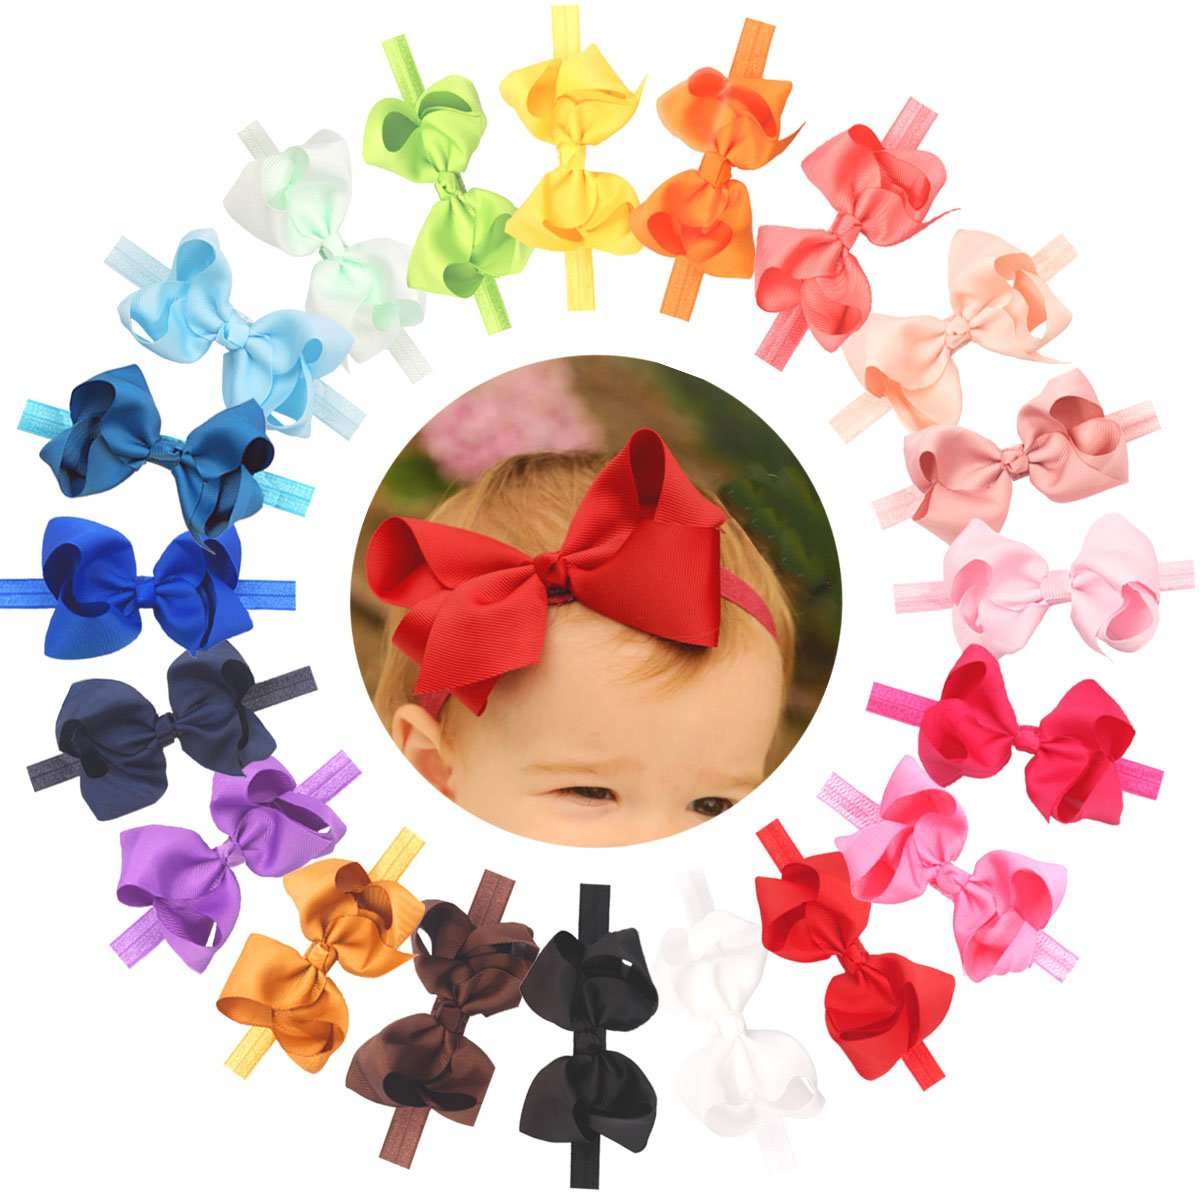 Baby Girls Toddler Hair Bows Headbands Large Pack of 20 Soft Elastic Stretchy Hair bands